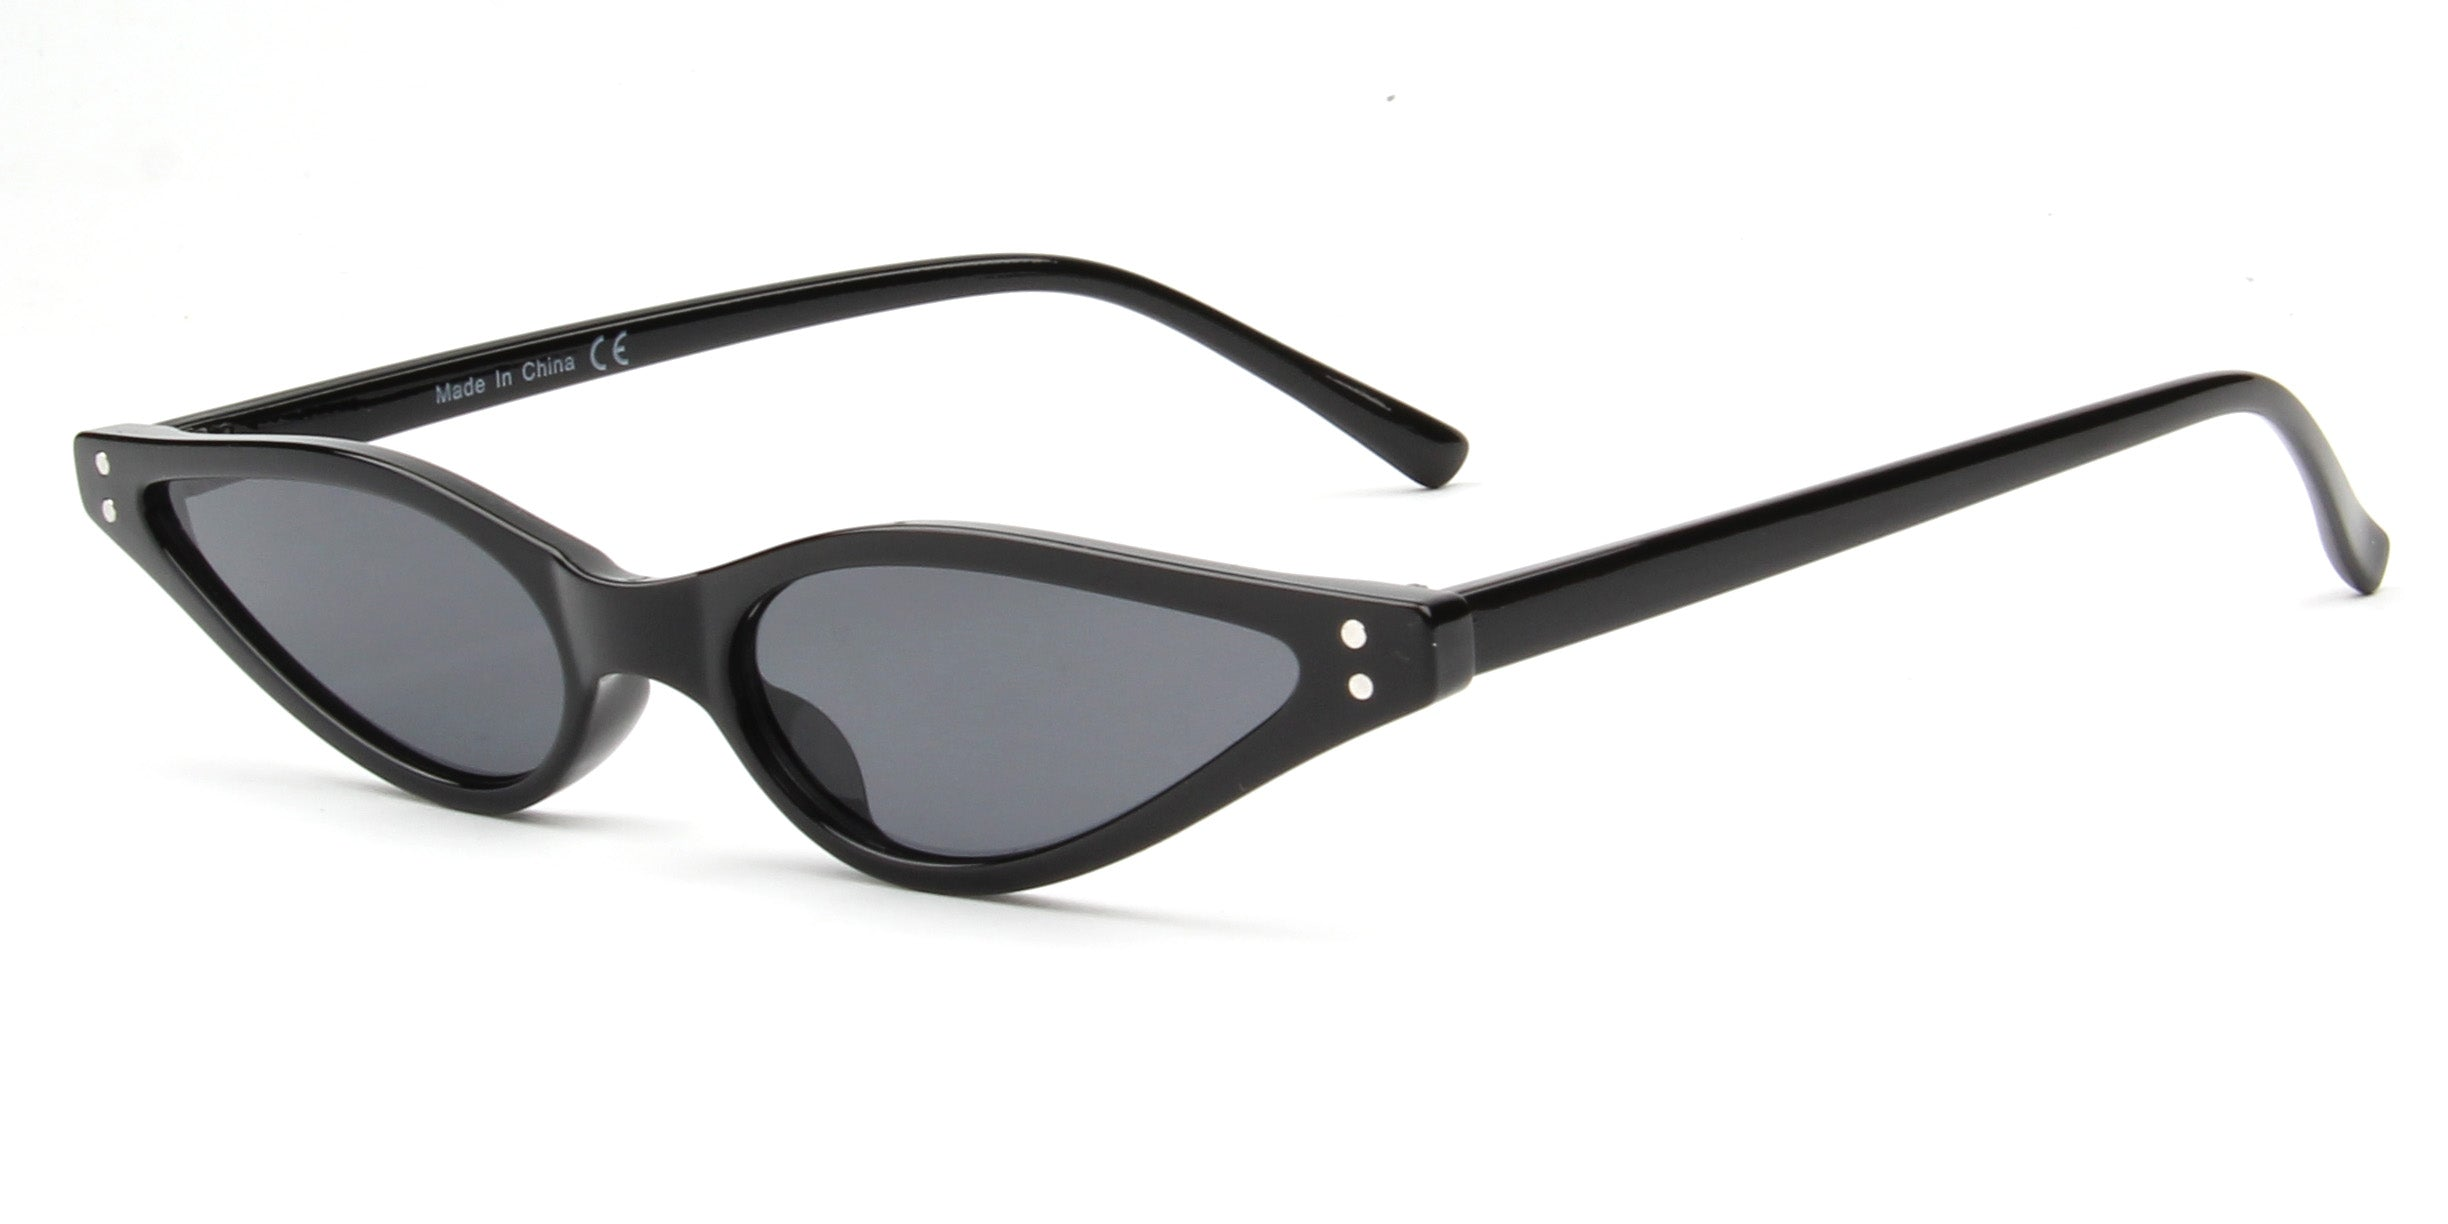 Akcessoryz-women small round oval sunglasses with black lens and black frame